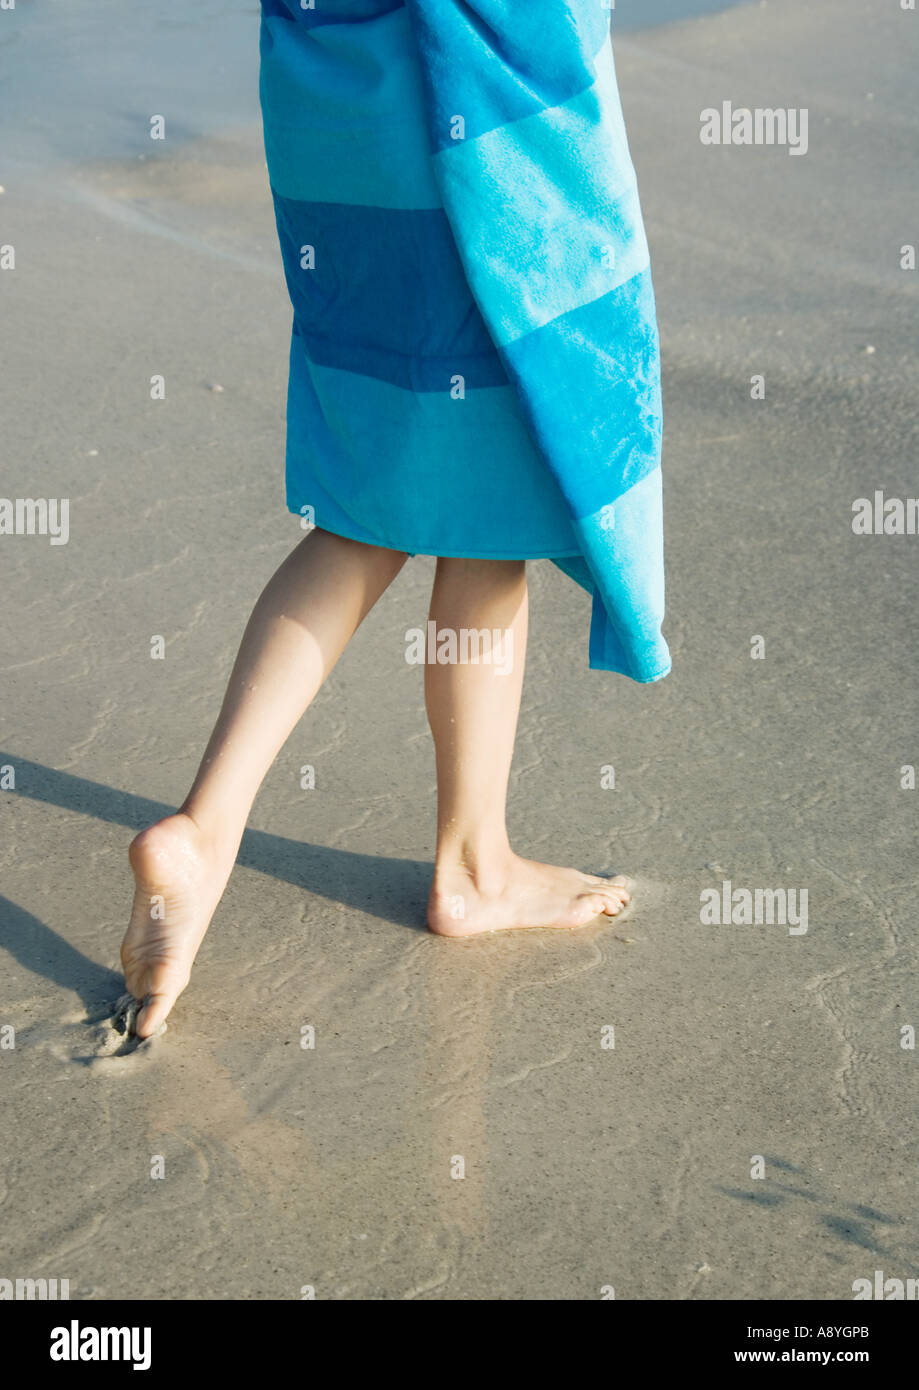 Child wrapped in towel walking on wet sand - Stock Image